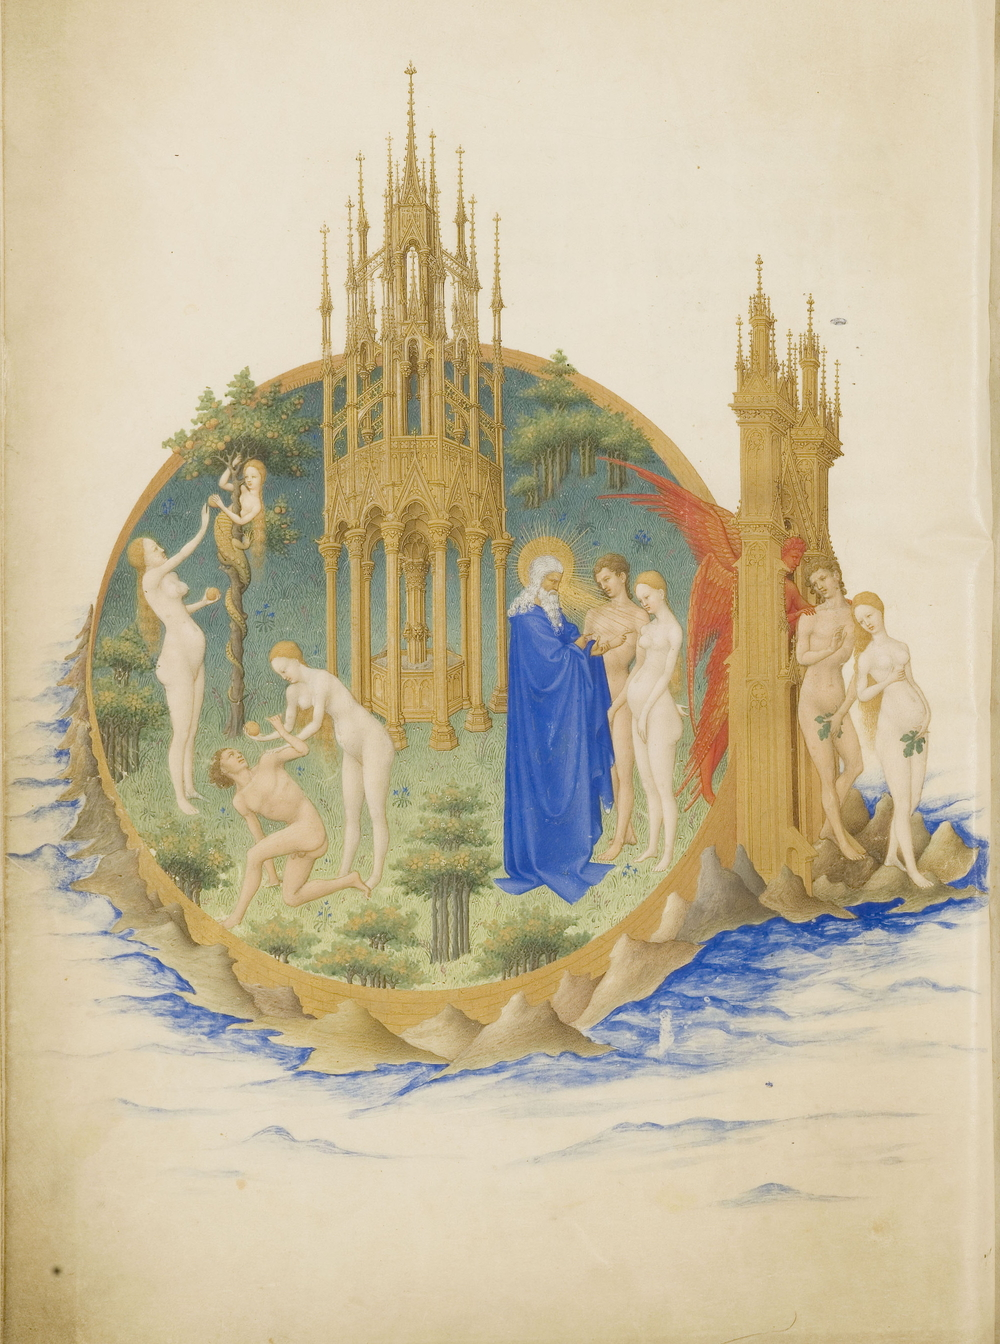 Folio_25v_-_The_Garden_of_Eden.jpg